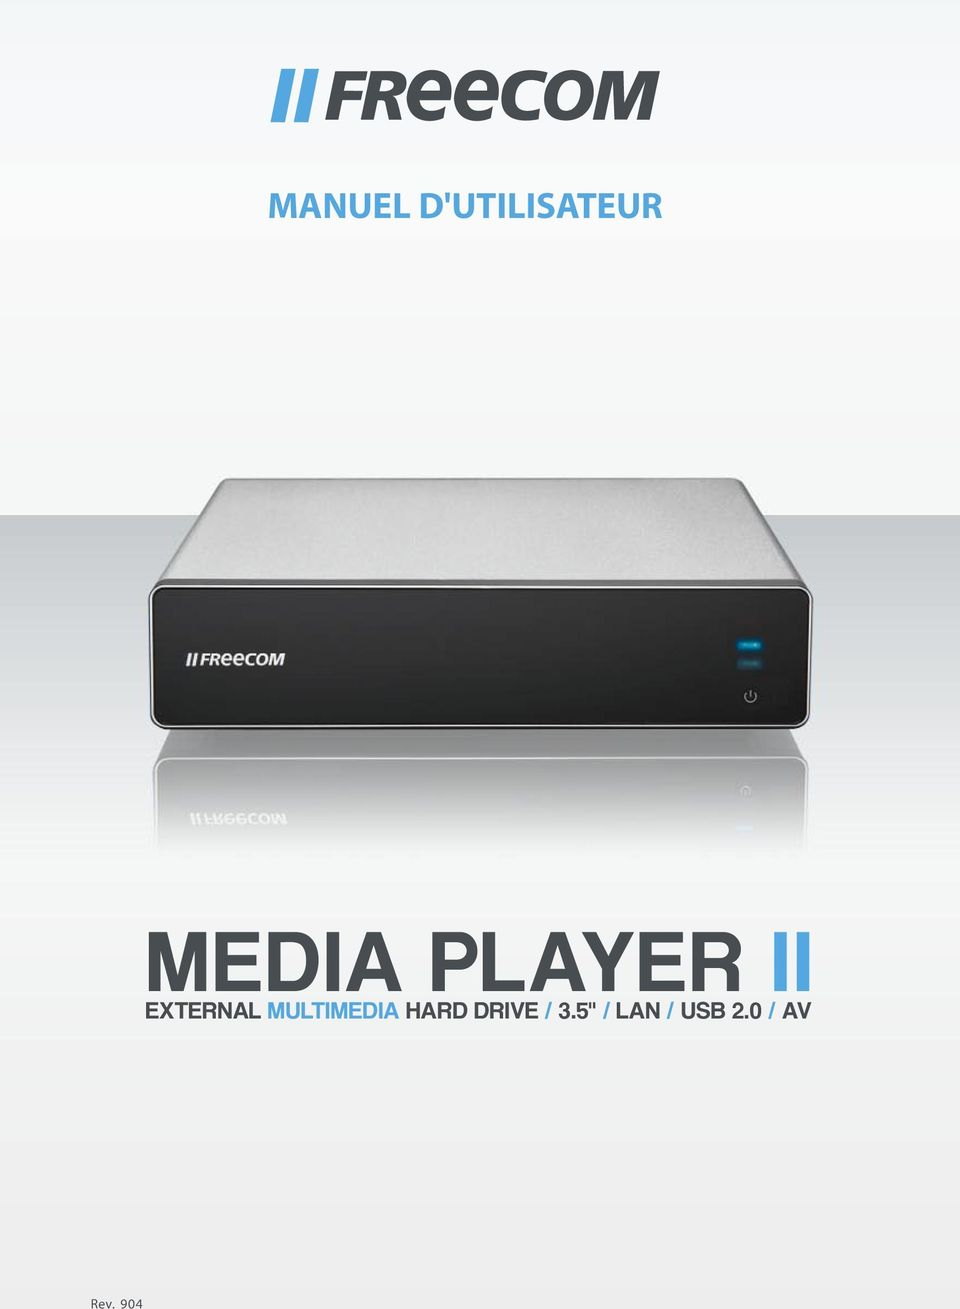 MULTIMEDIA HARD DRIVE / 3.